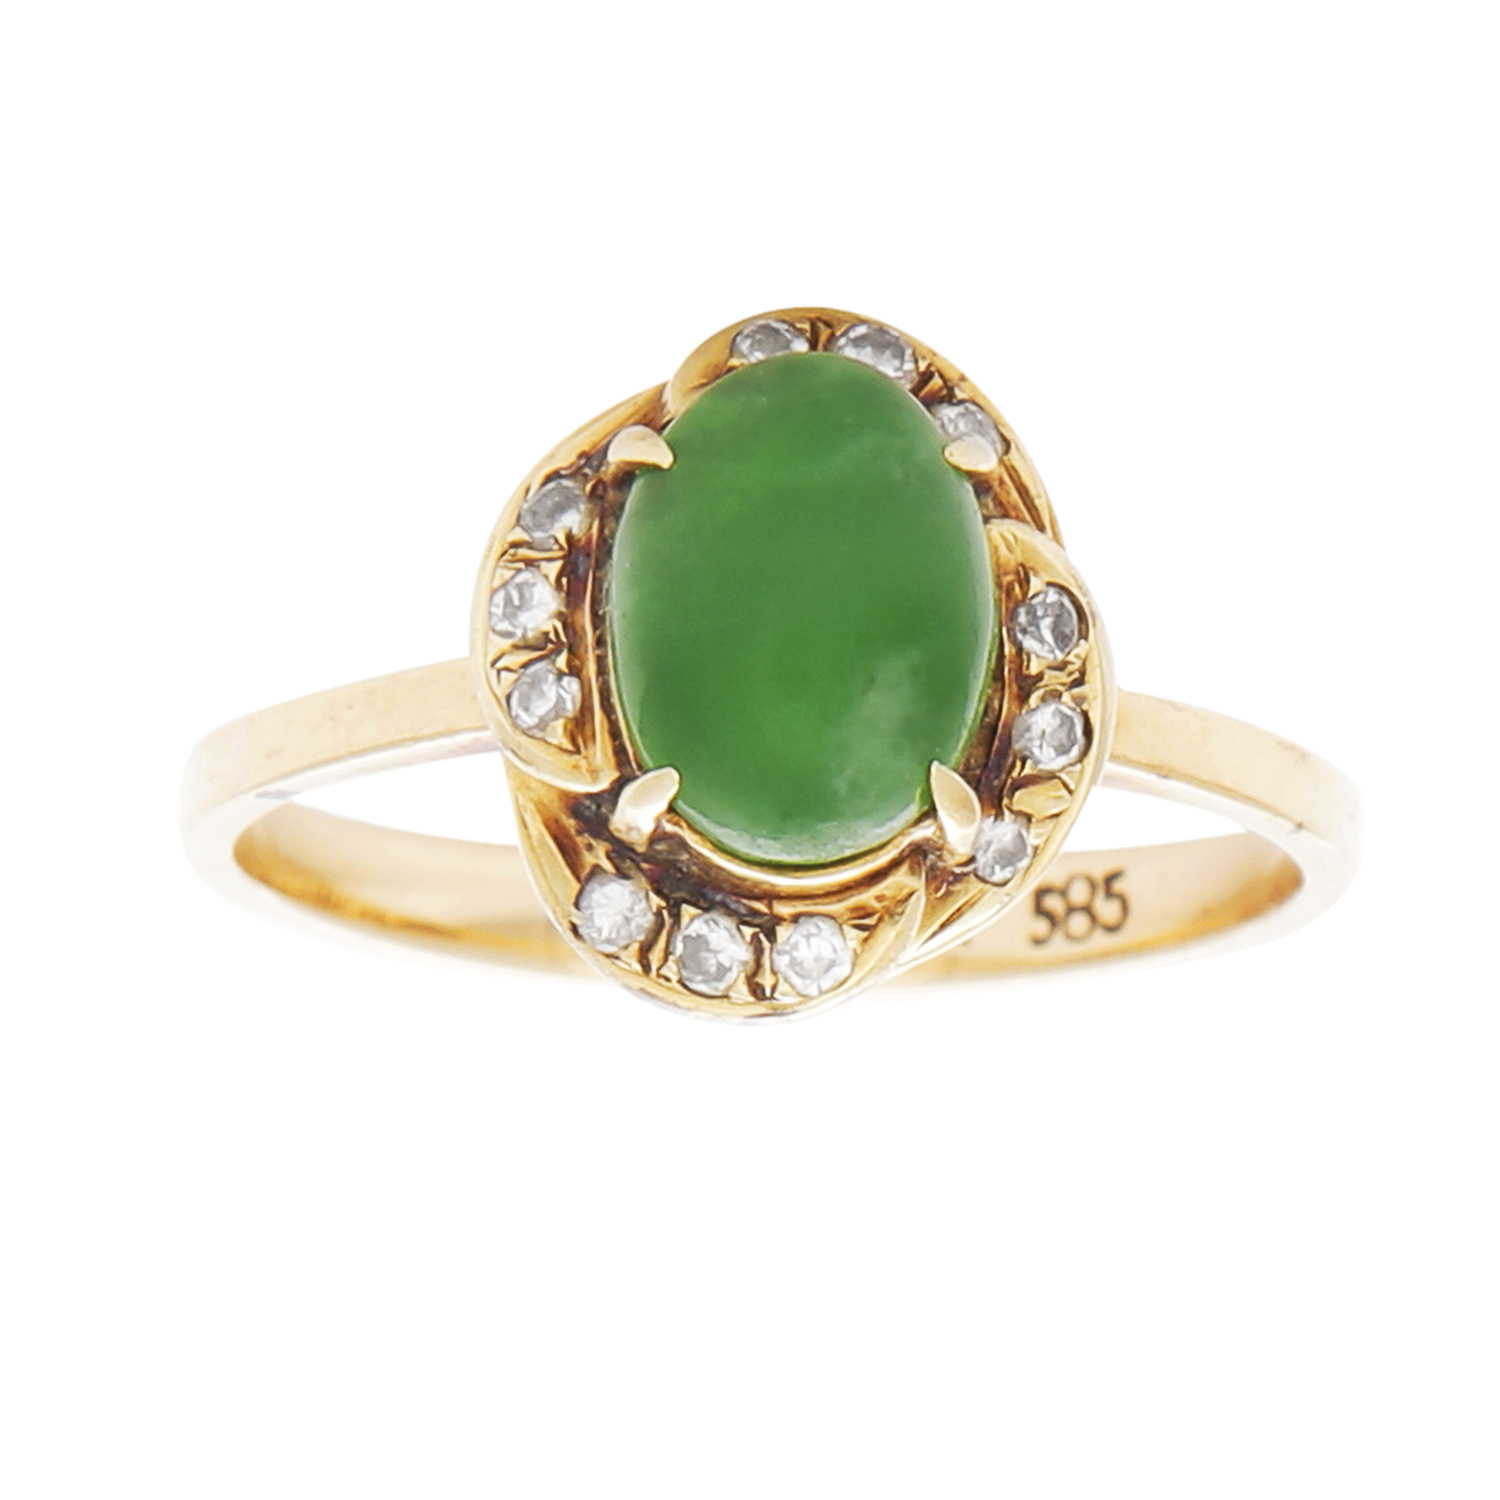 Los 8 - JADEITE JADE AND DIAMOND RING the oval jade cabochon within a stylised diamond border, size L / 5.